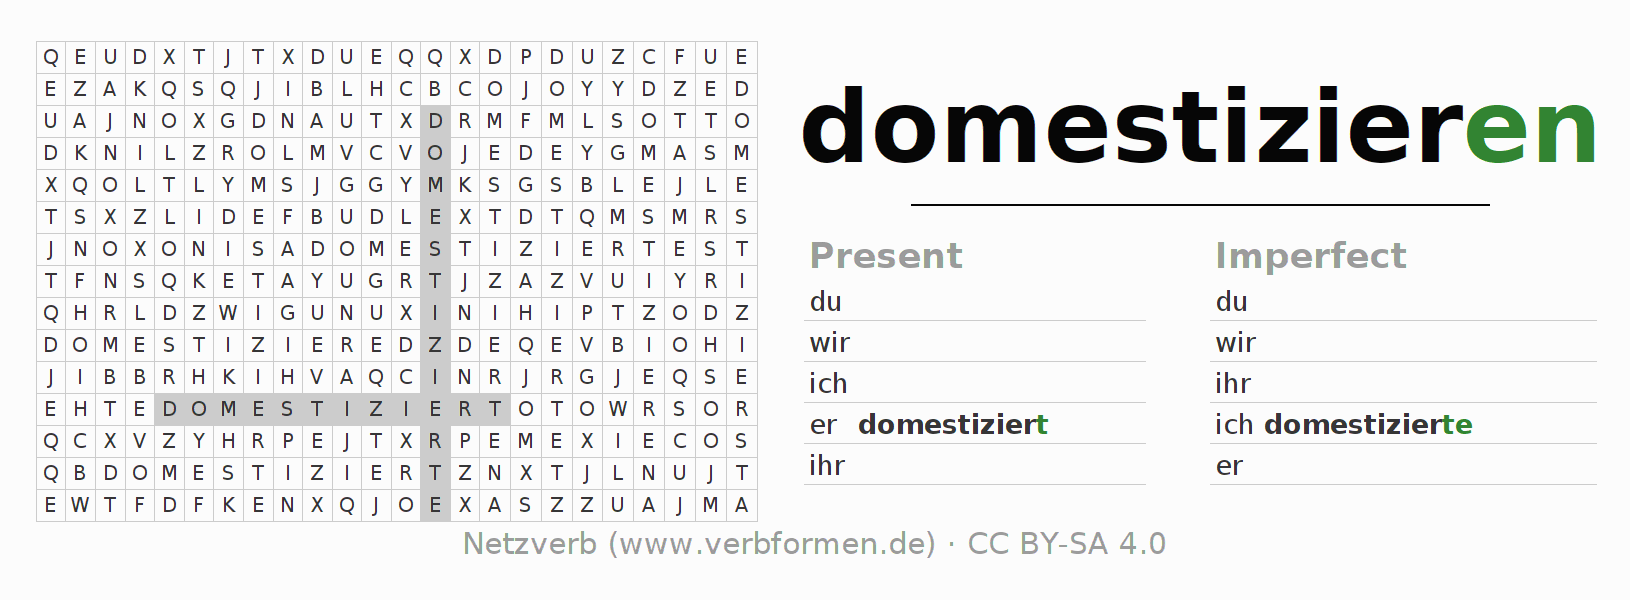 Word search puzzle for the conjugation of the verb domestizieren